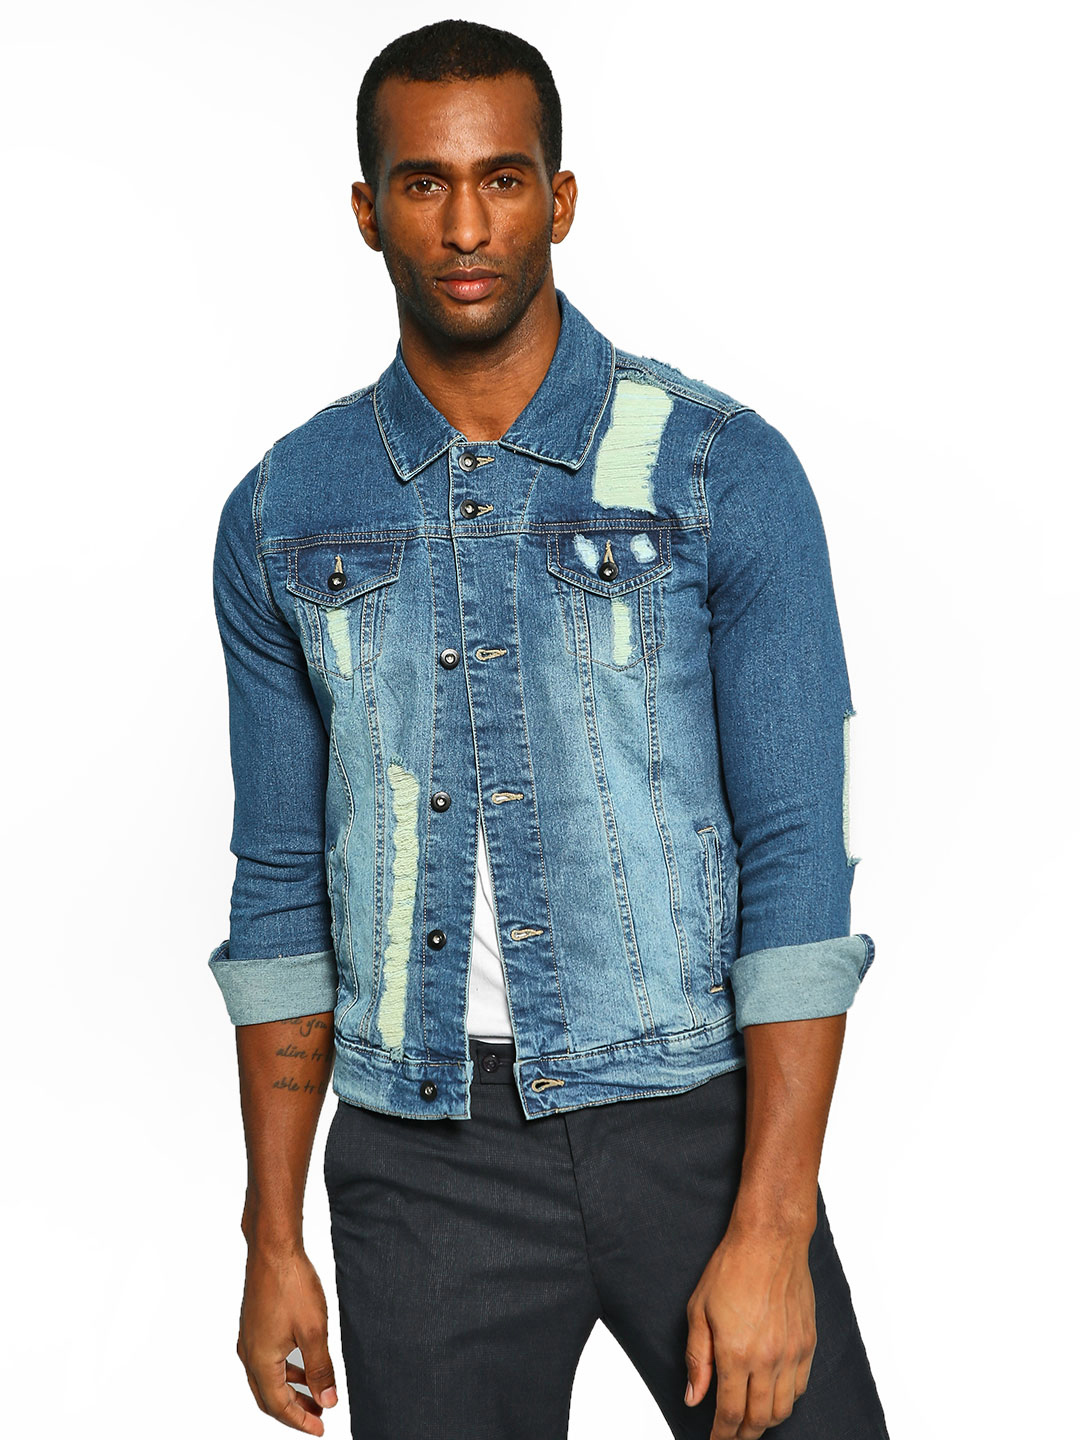 Styx & Stones Blue Light Wash Distressed Denim Jacket 1